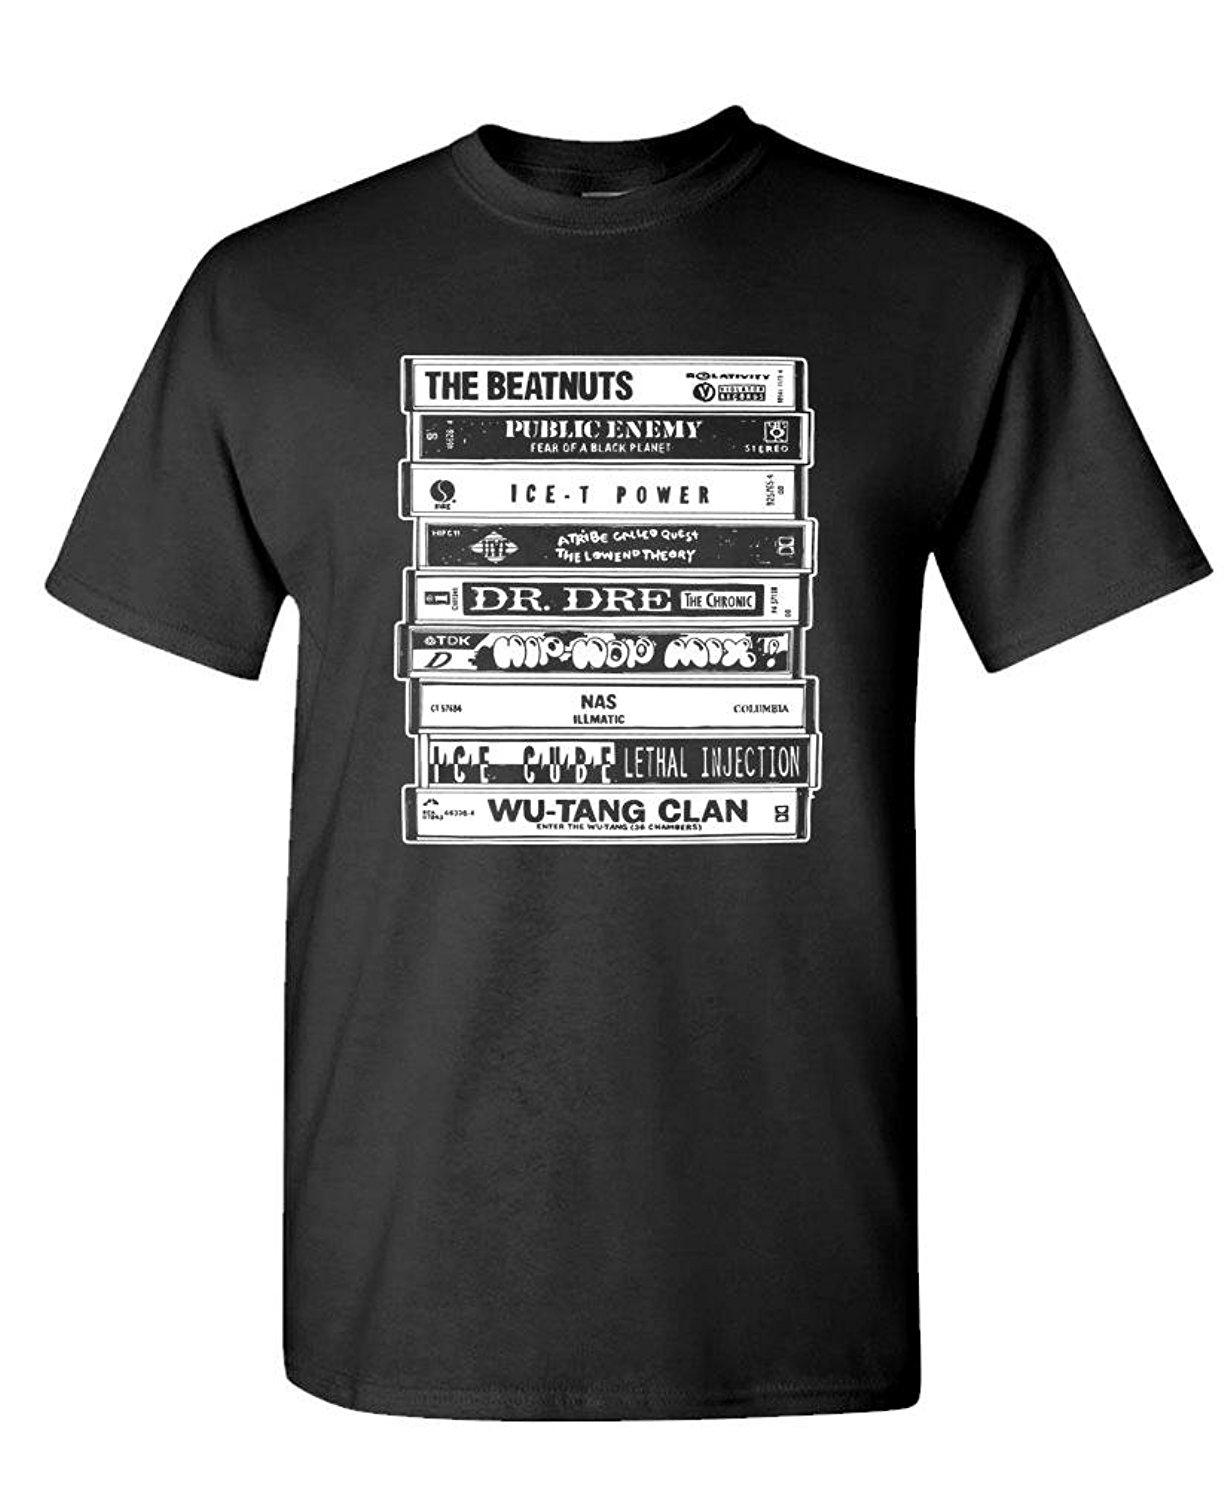 Hip Hop Artists Cassettes Old School Rap - Mens Cotton T-shirt Fashion Men  T Shirt Free Shipping Top Tee Chinese Style